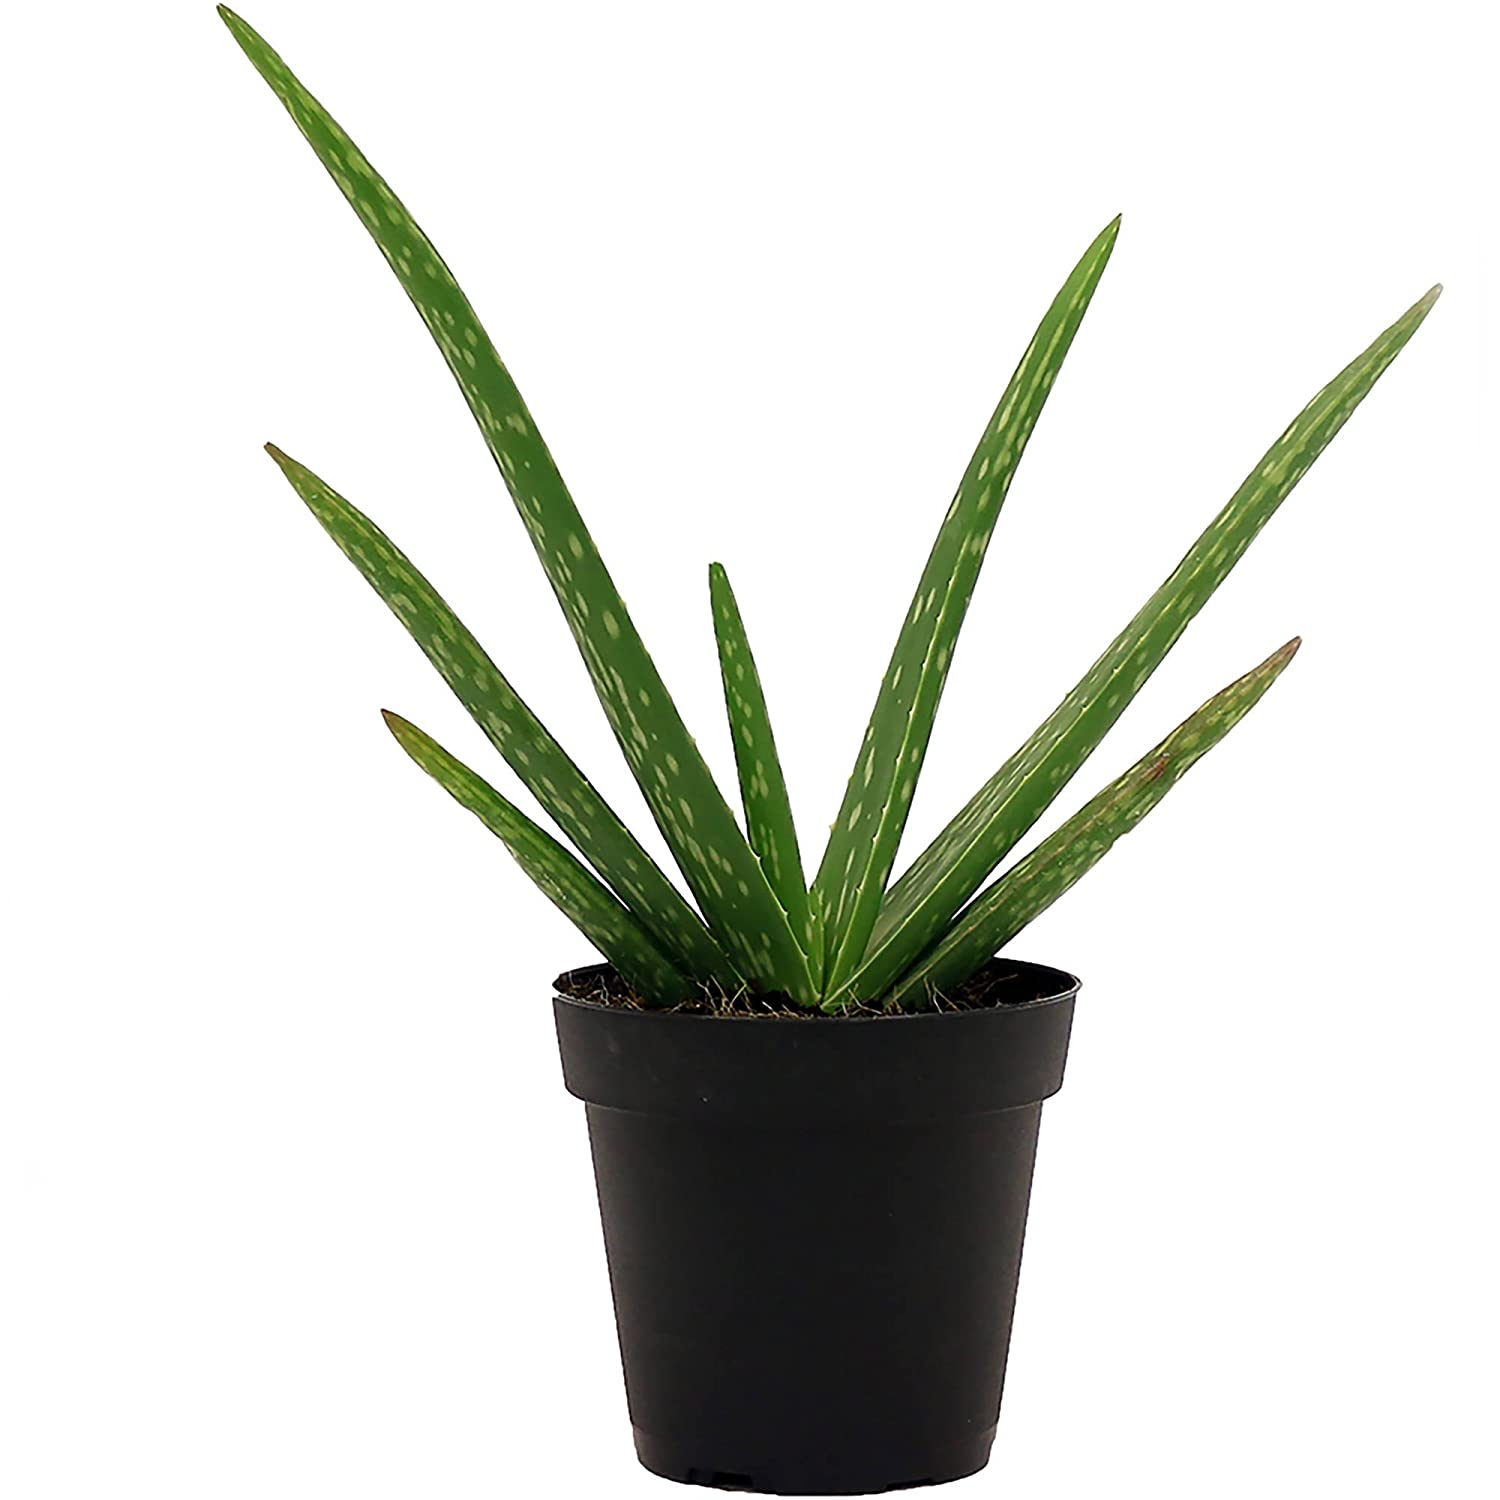 8 Low-Maintenance Houseplants 6